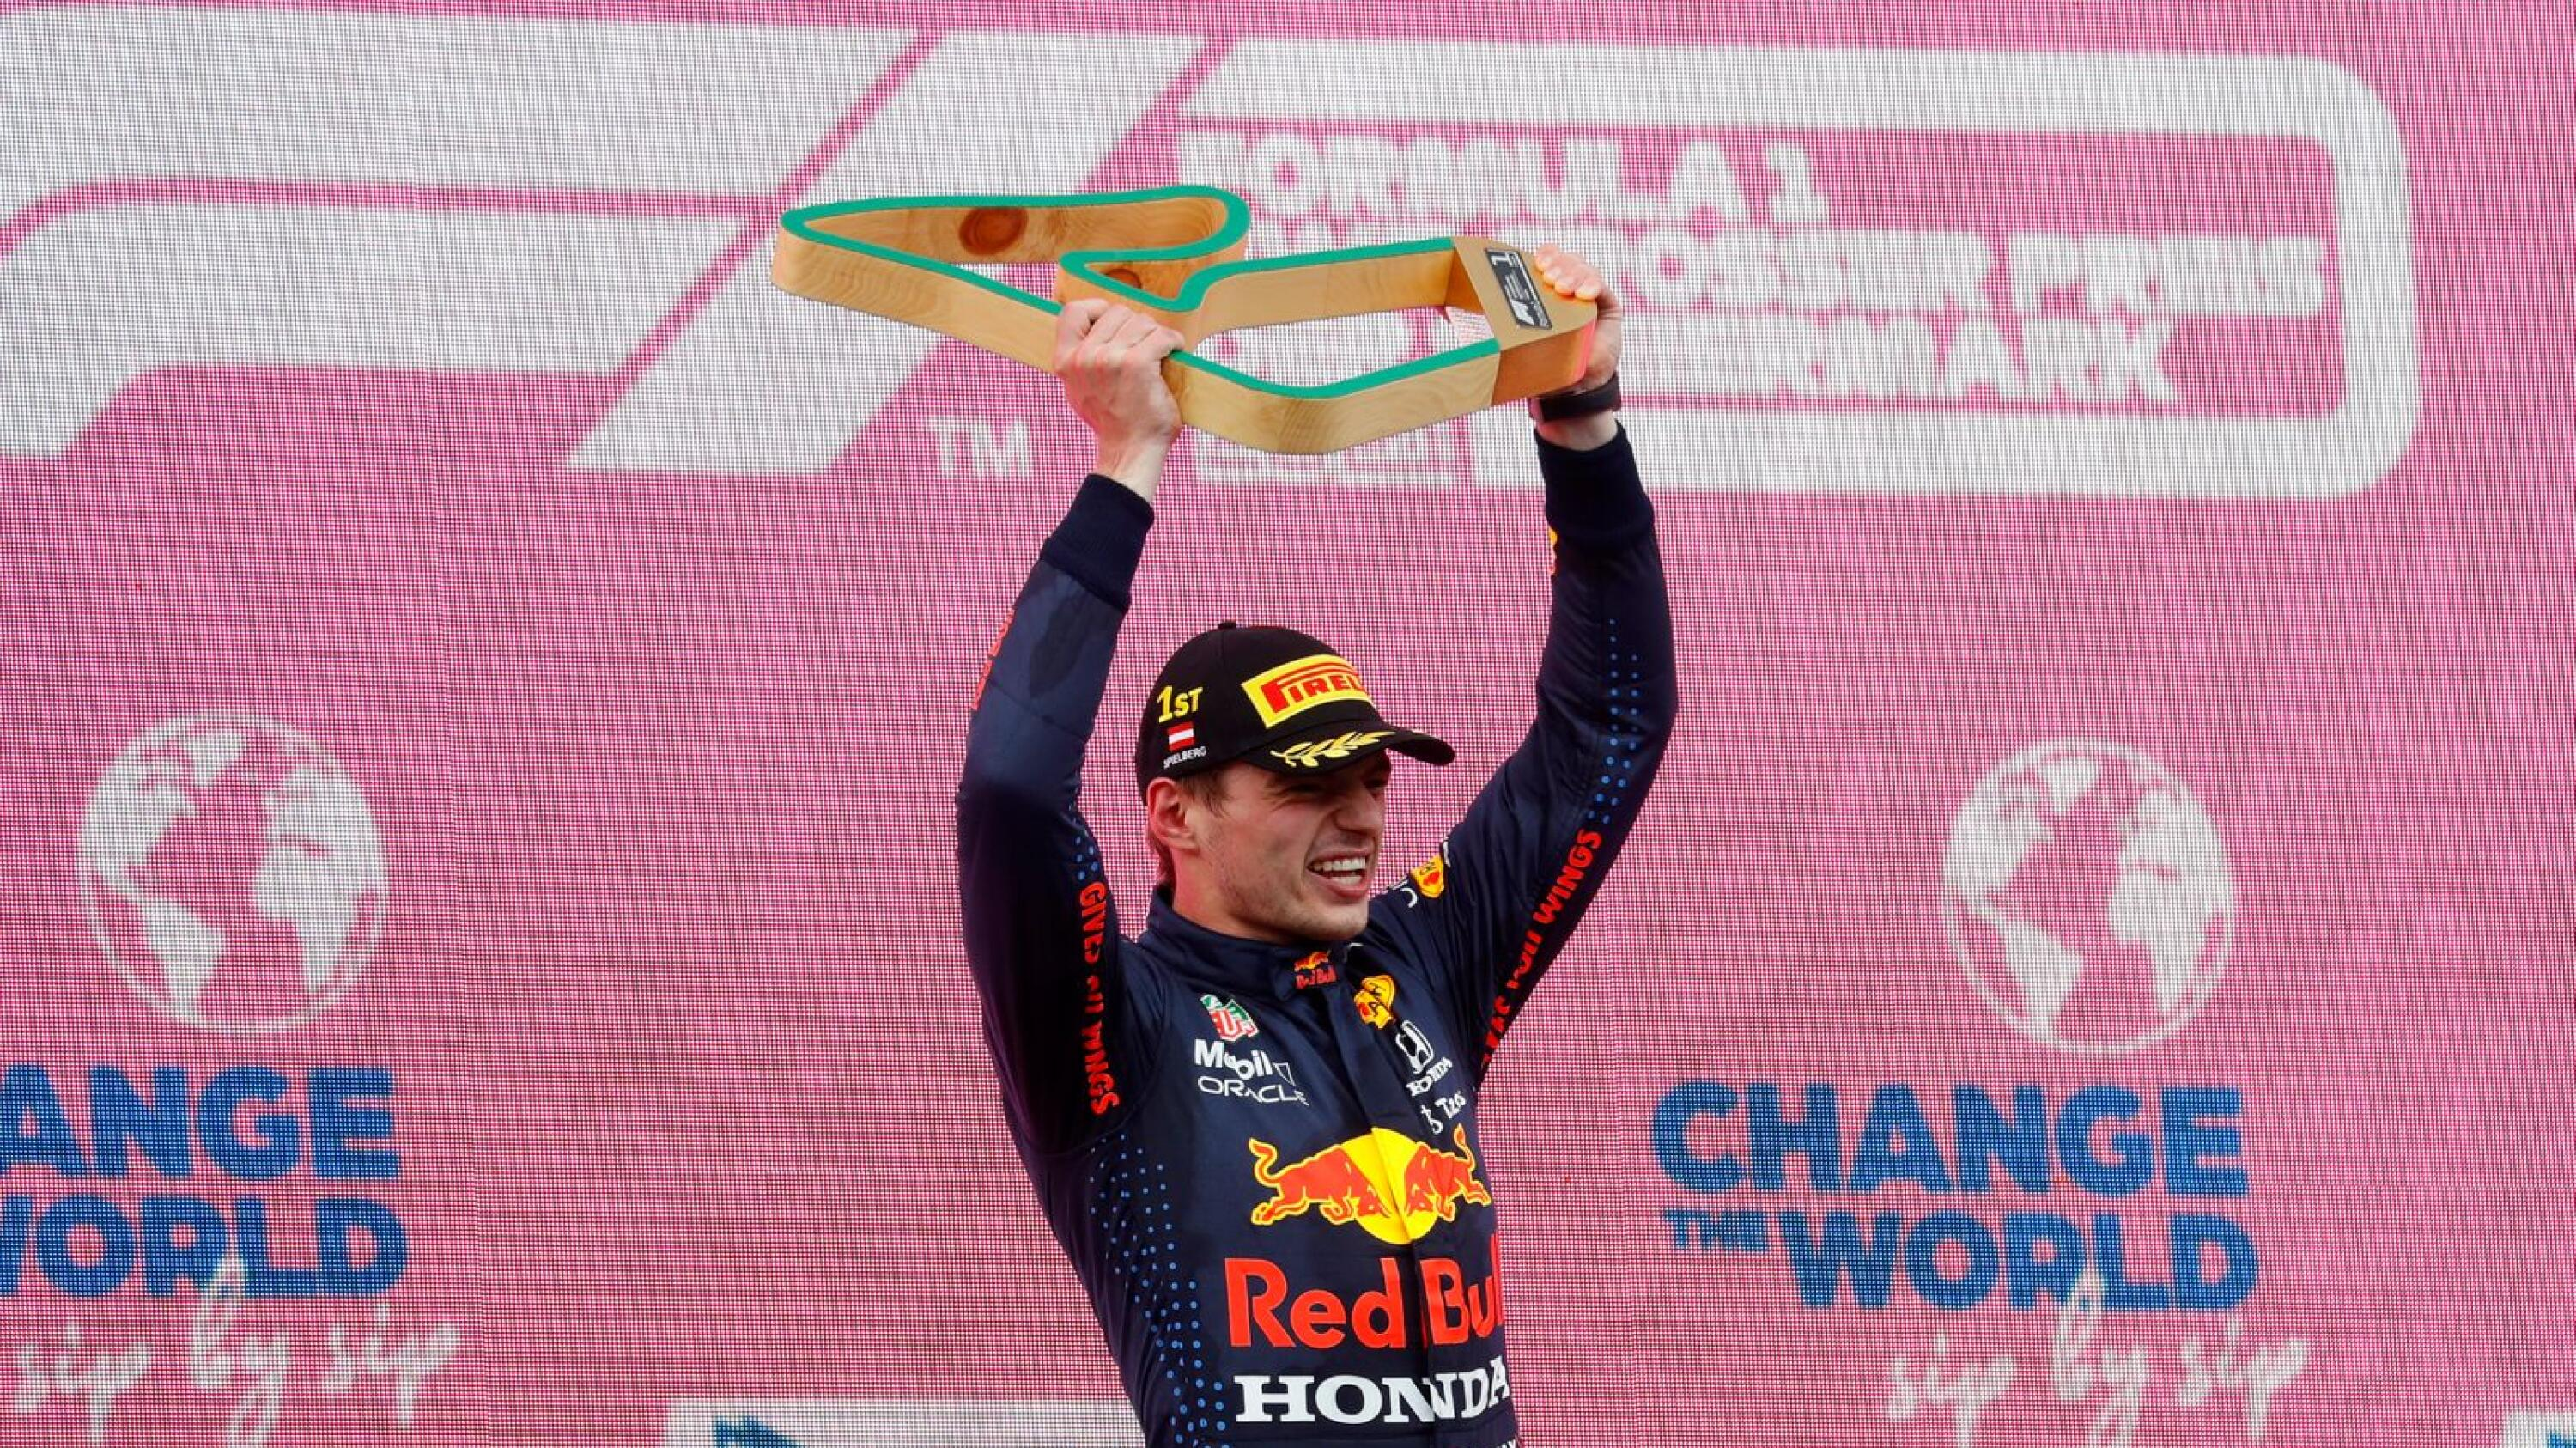 Red Bull's Max Verstappen celebrates with the trophy after winning the Styrian Grand Prix in Spielberg on Sunday